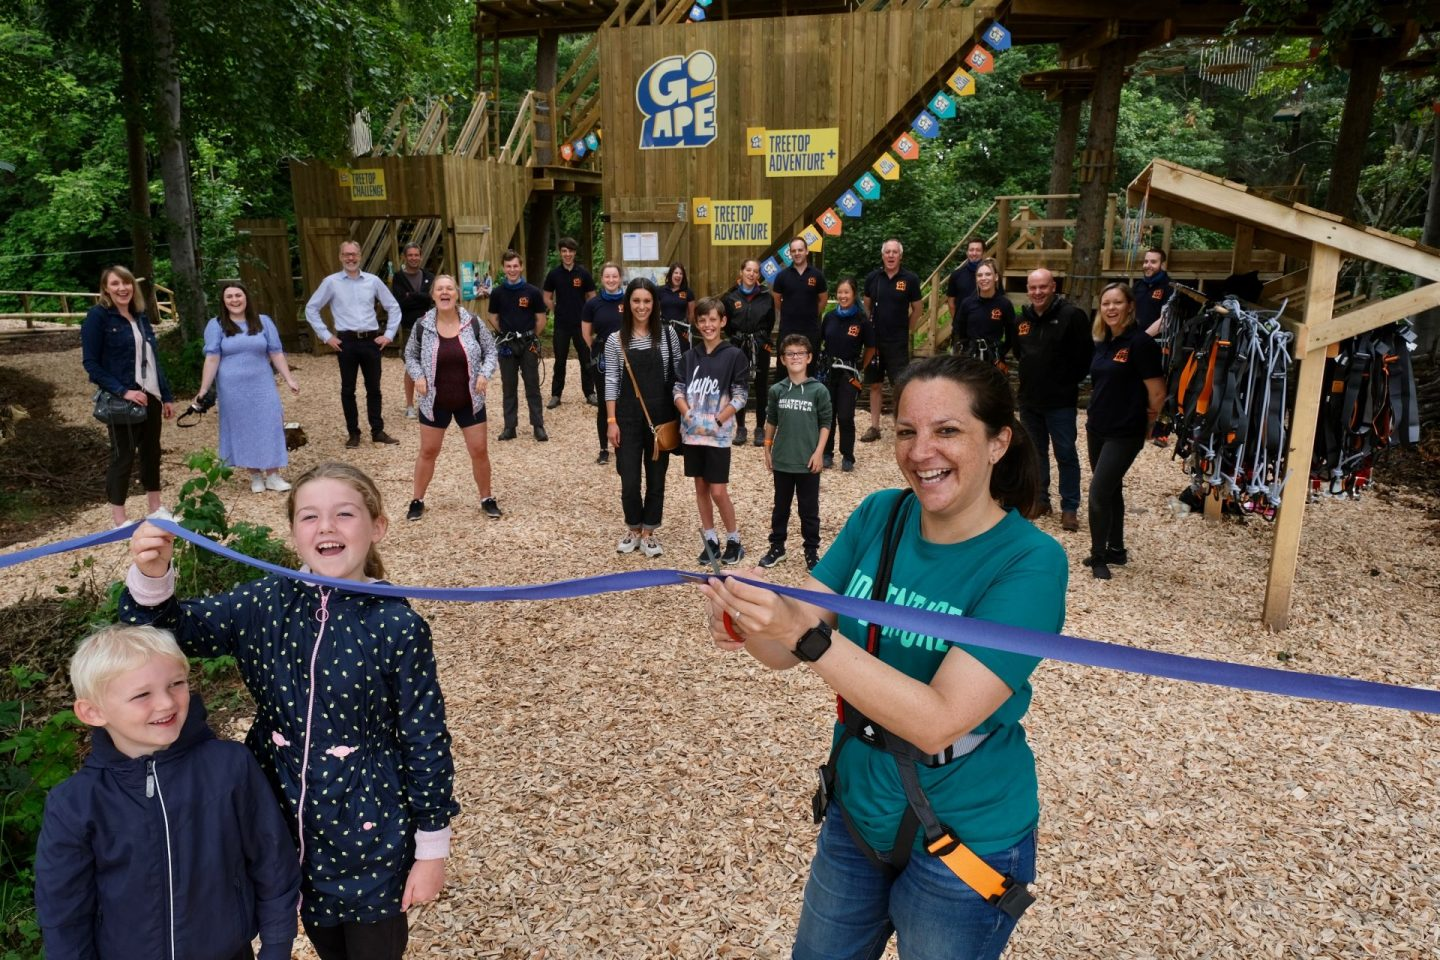 The first Go Ape for Kids in Scotland